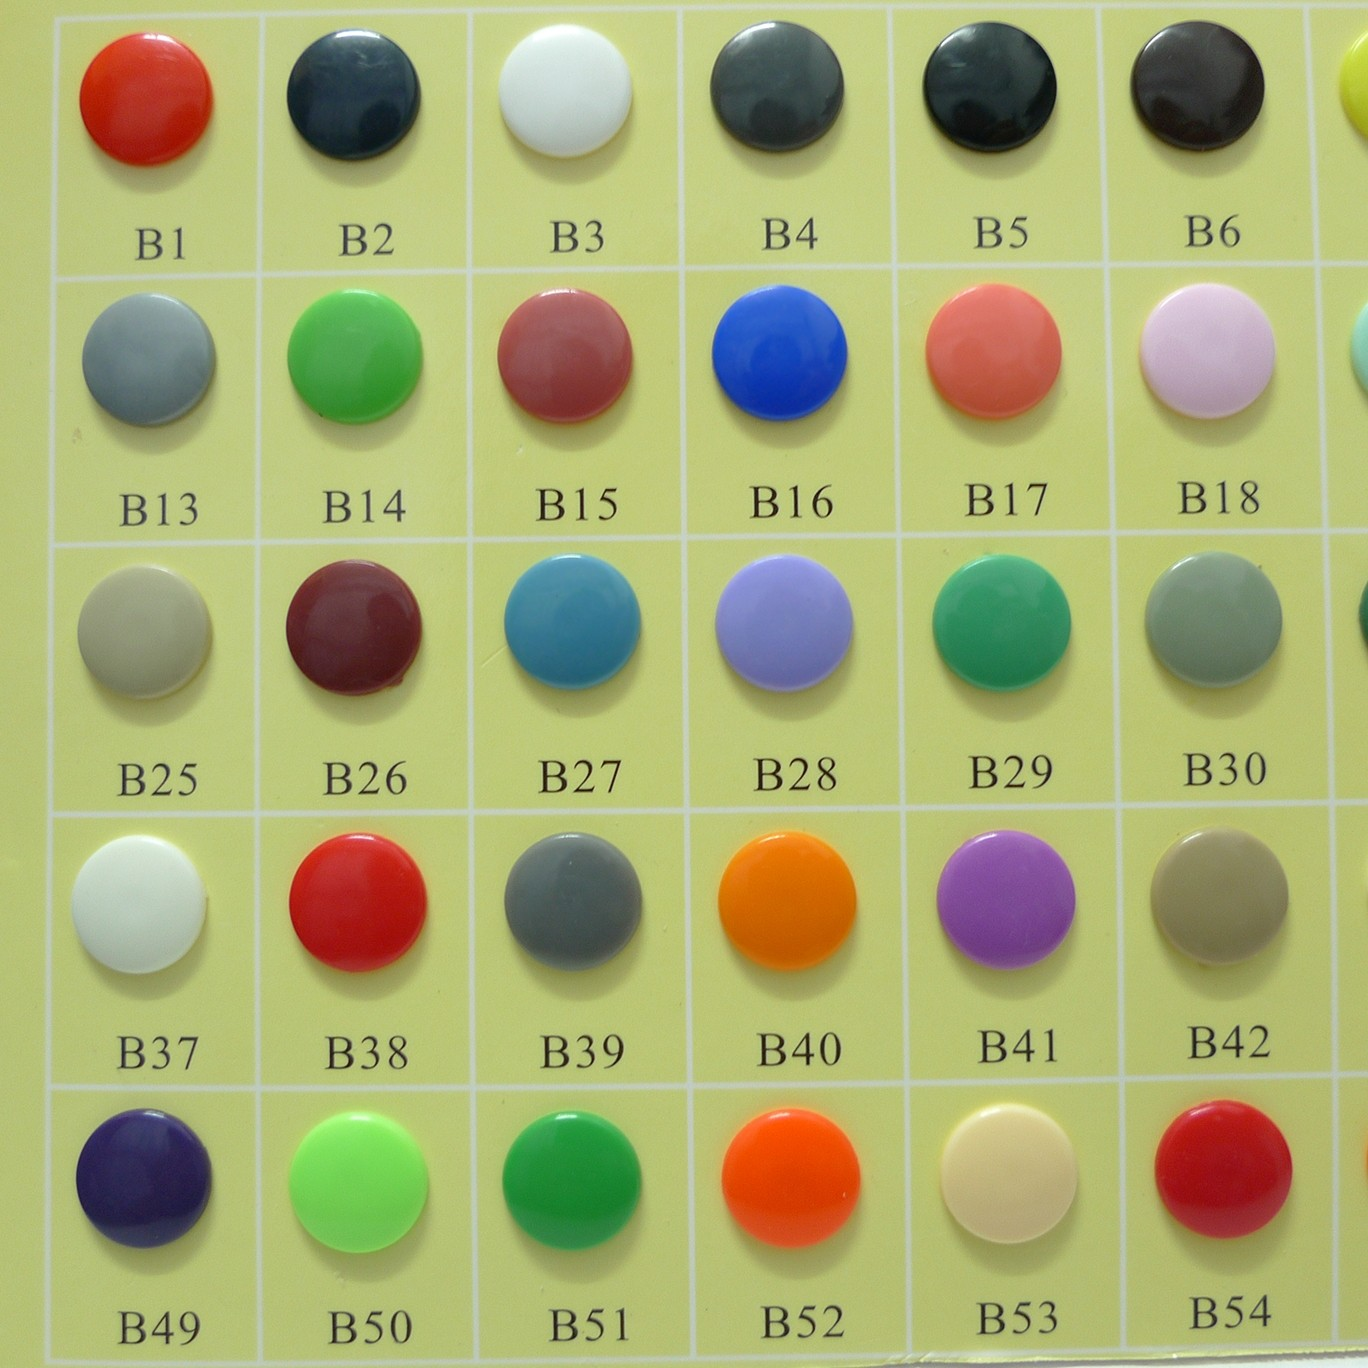 200 Sets Glossy Round KAM T5 Snap Buttons 60 Colors Available in Stock